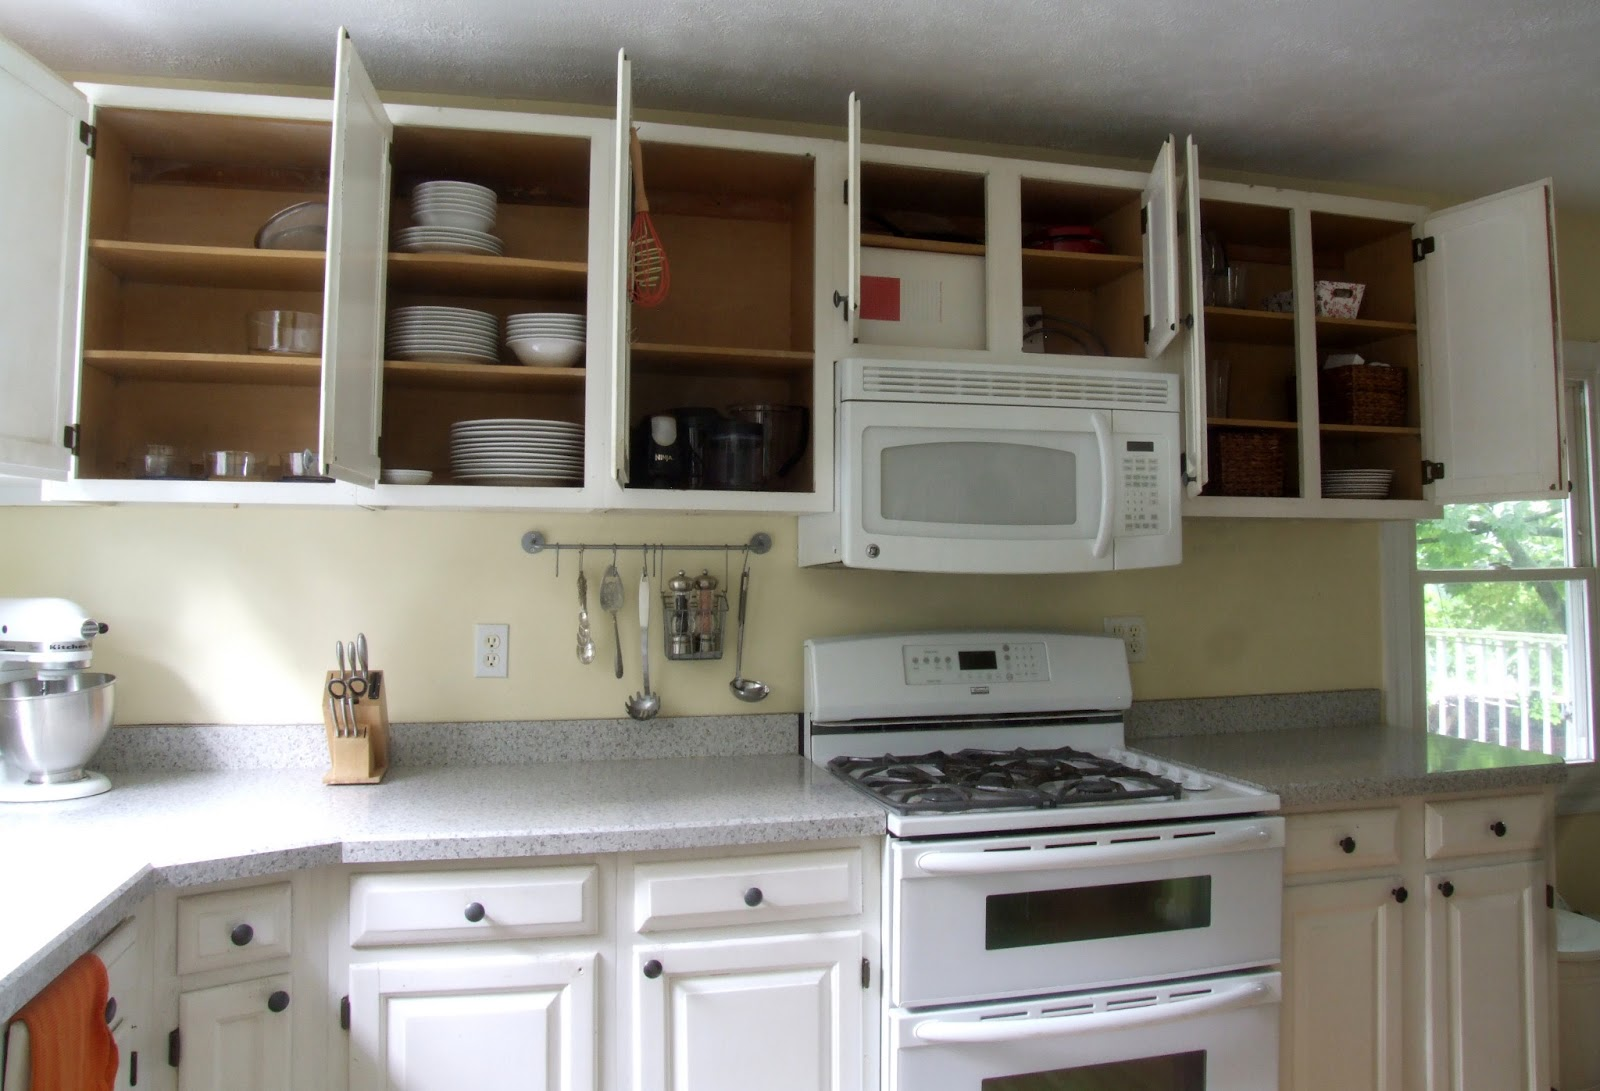 I D Love To Jump On The Cur Kitchen Trend And Replace Upper Cabinets With Open Shelving But M Not Sure How Good That Would Be For Value Of